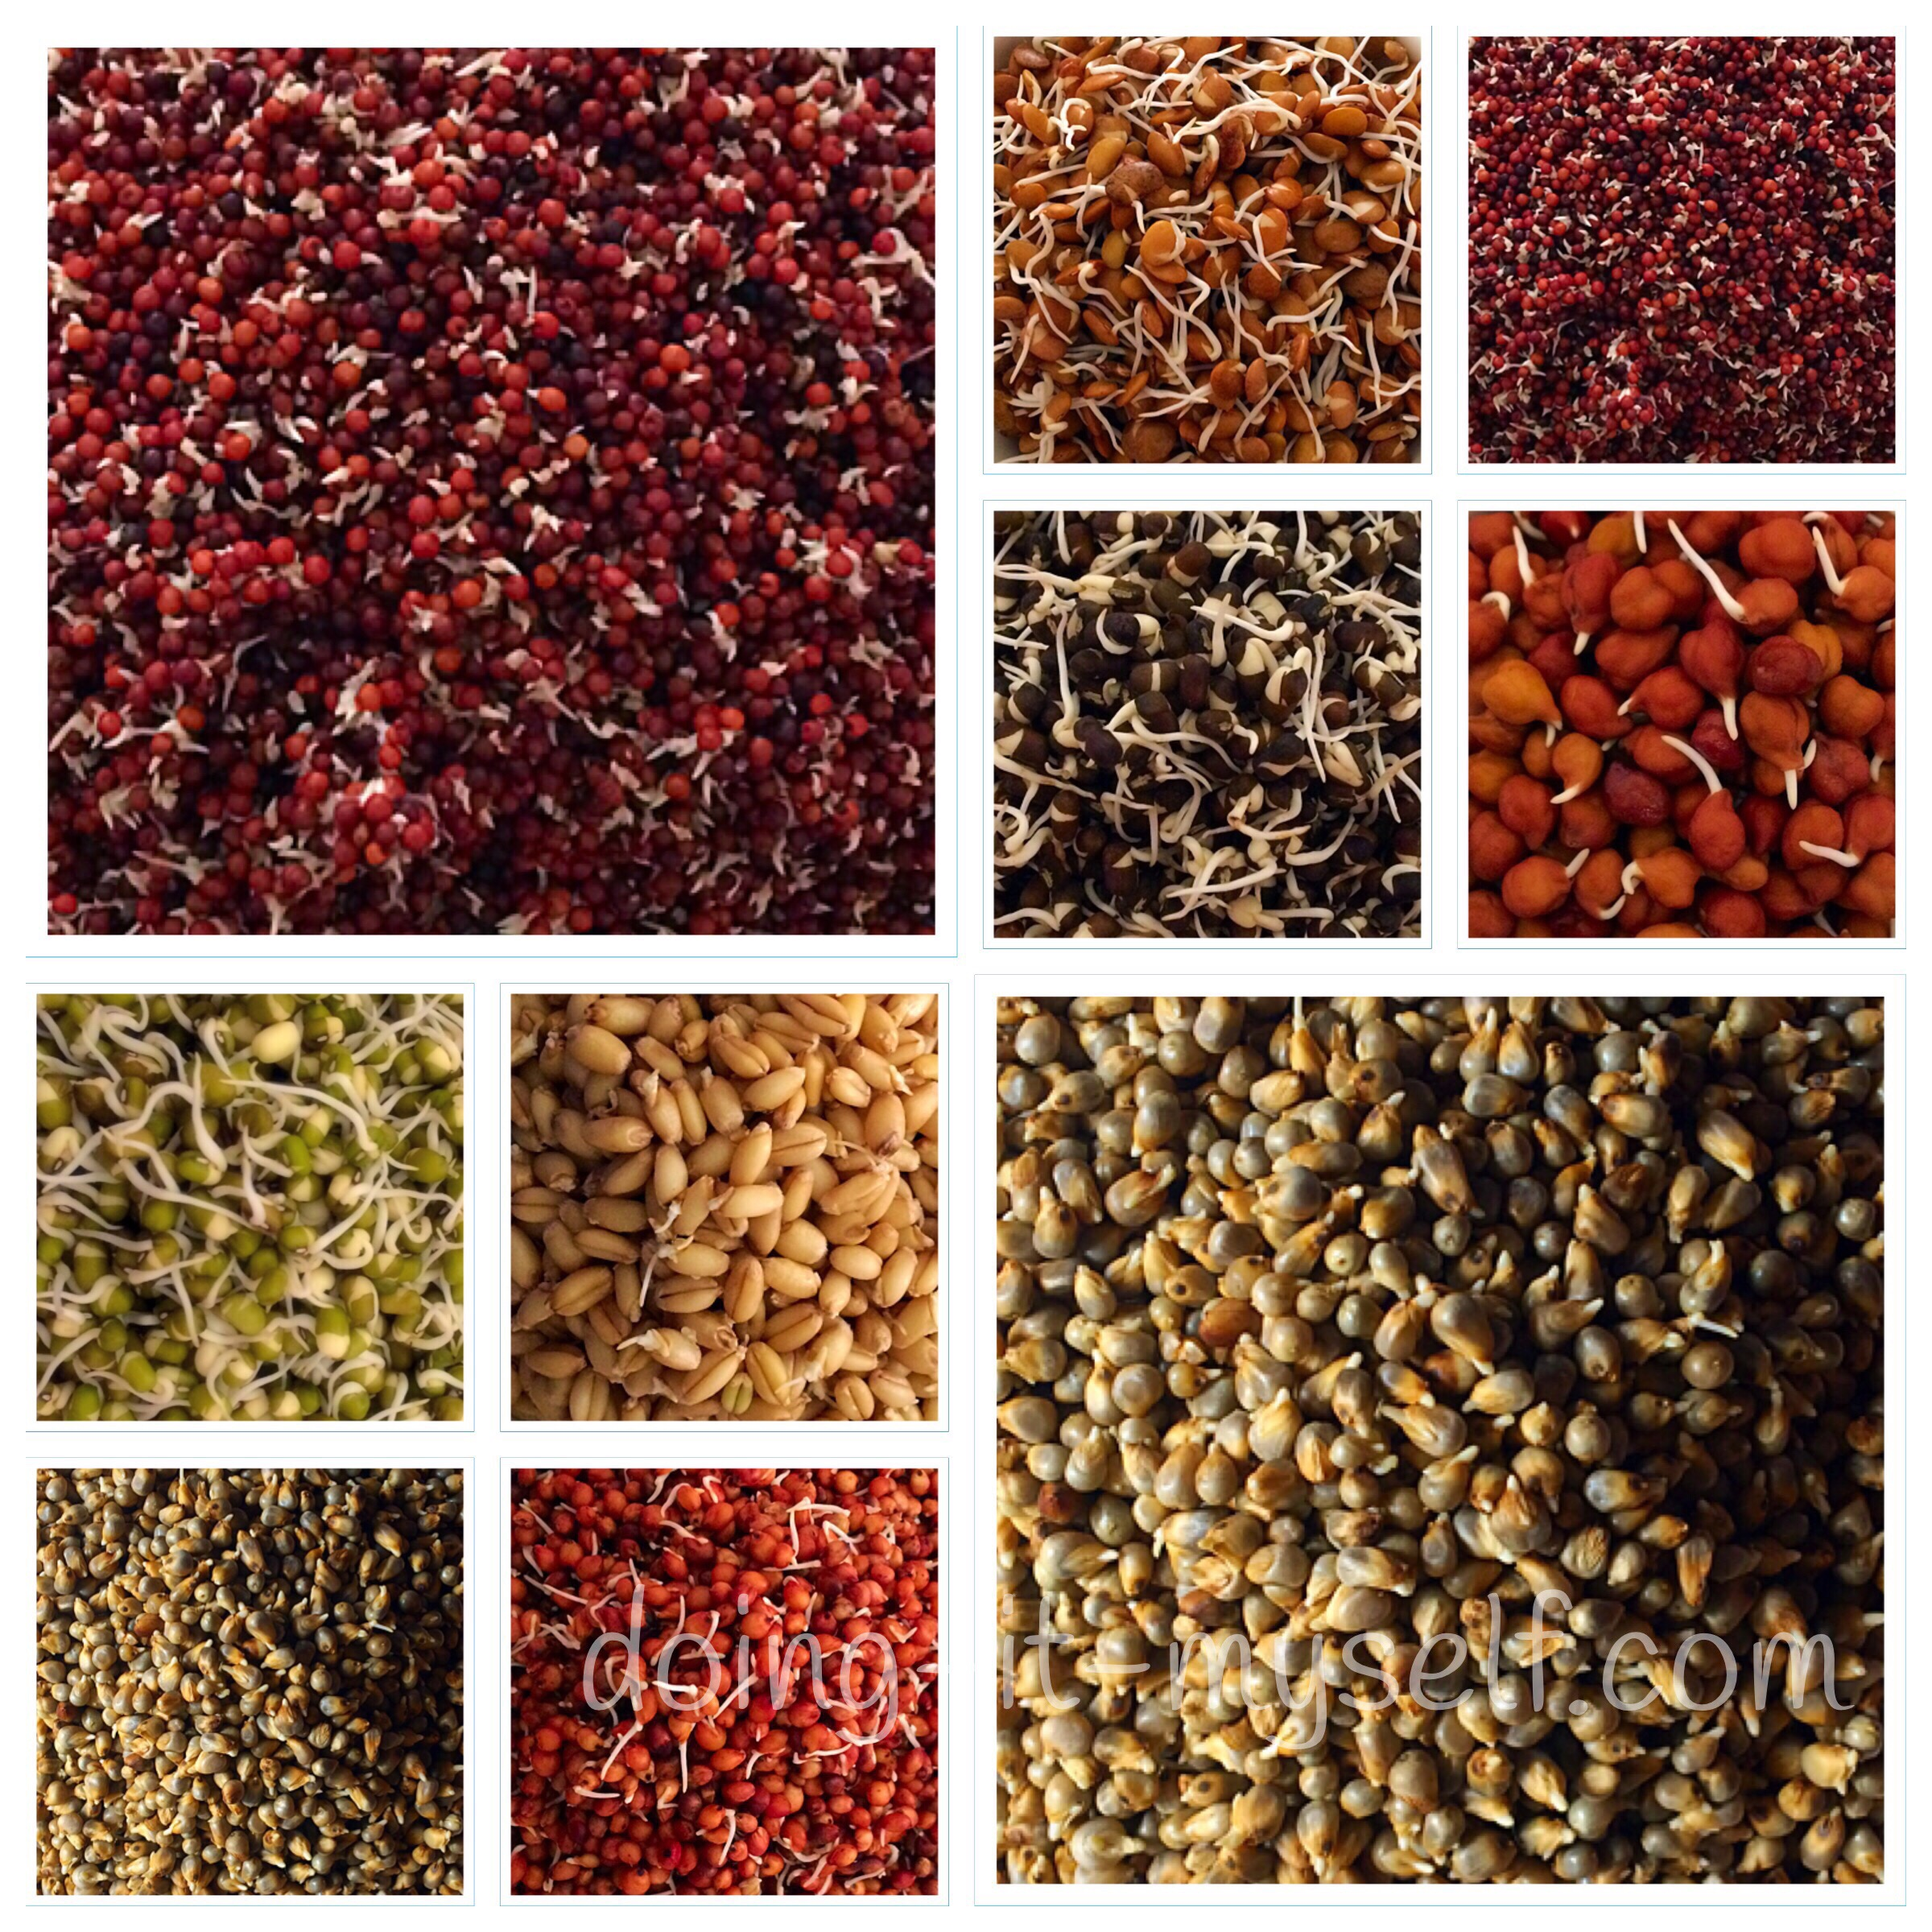 how-sprouts-look-finger millets-horse gram-chick peas- black gram- green gram- wheat- pearl millets-sorghum